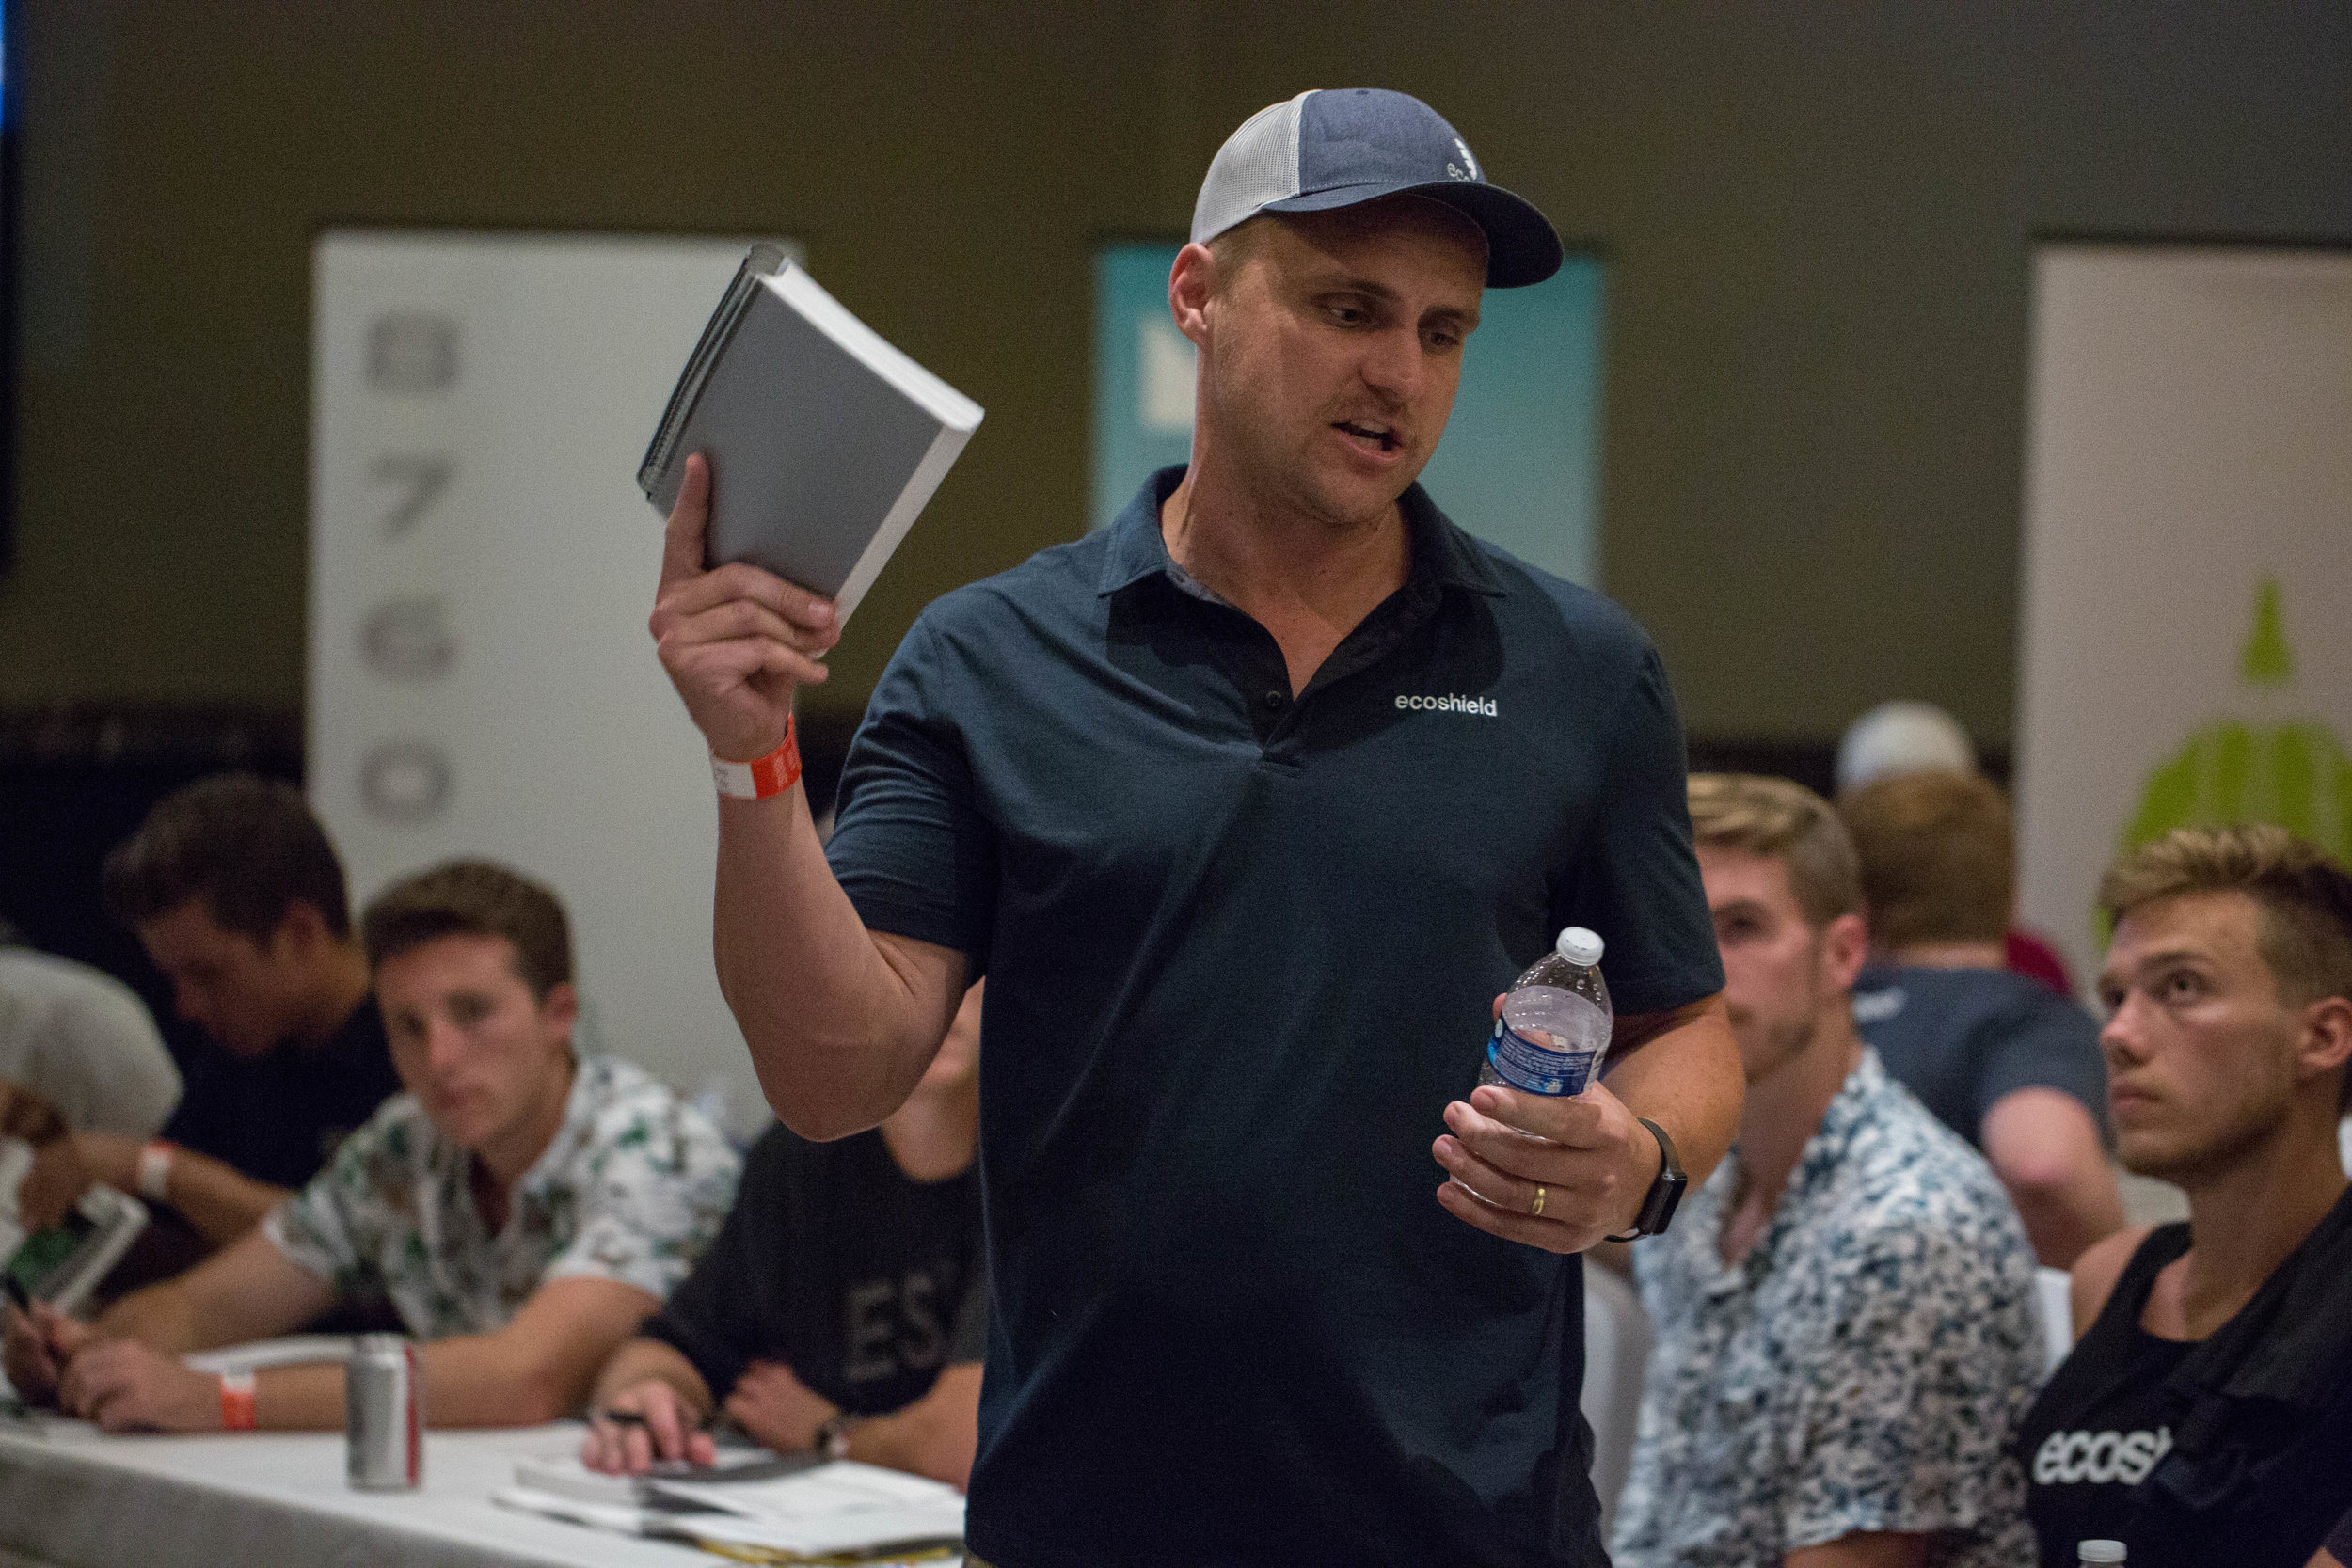 Learn fromthe best: - - 300 Pages of Training Manuals- 85 Sales Training Videos- Daily Training Meetings from Sales Experts- Weekly Video Conferences from the Company Founder- Preseason Sales Trips- Monthly Book Club- Highly Competitive Management Development - Program